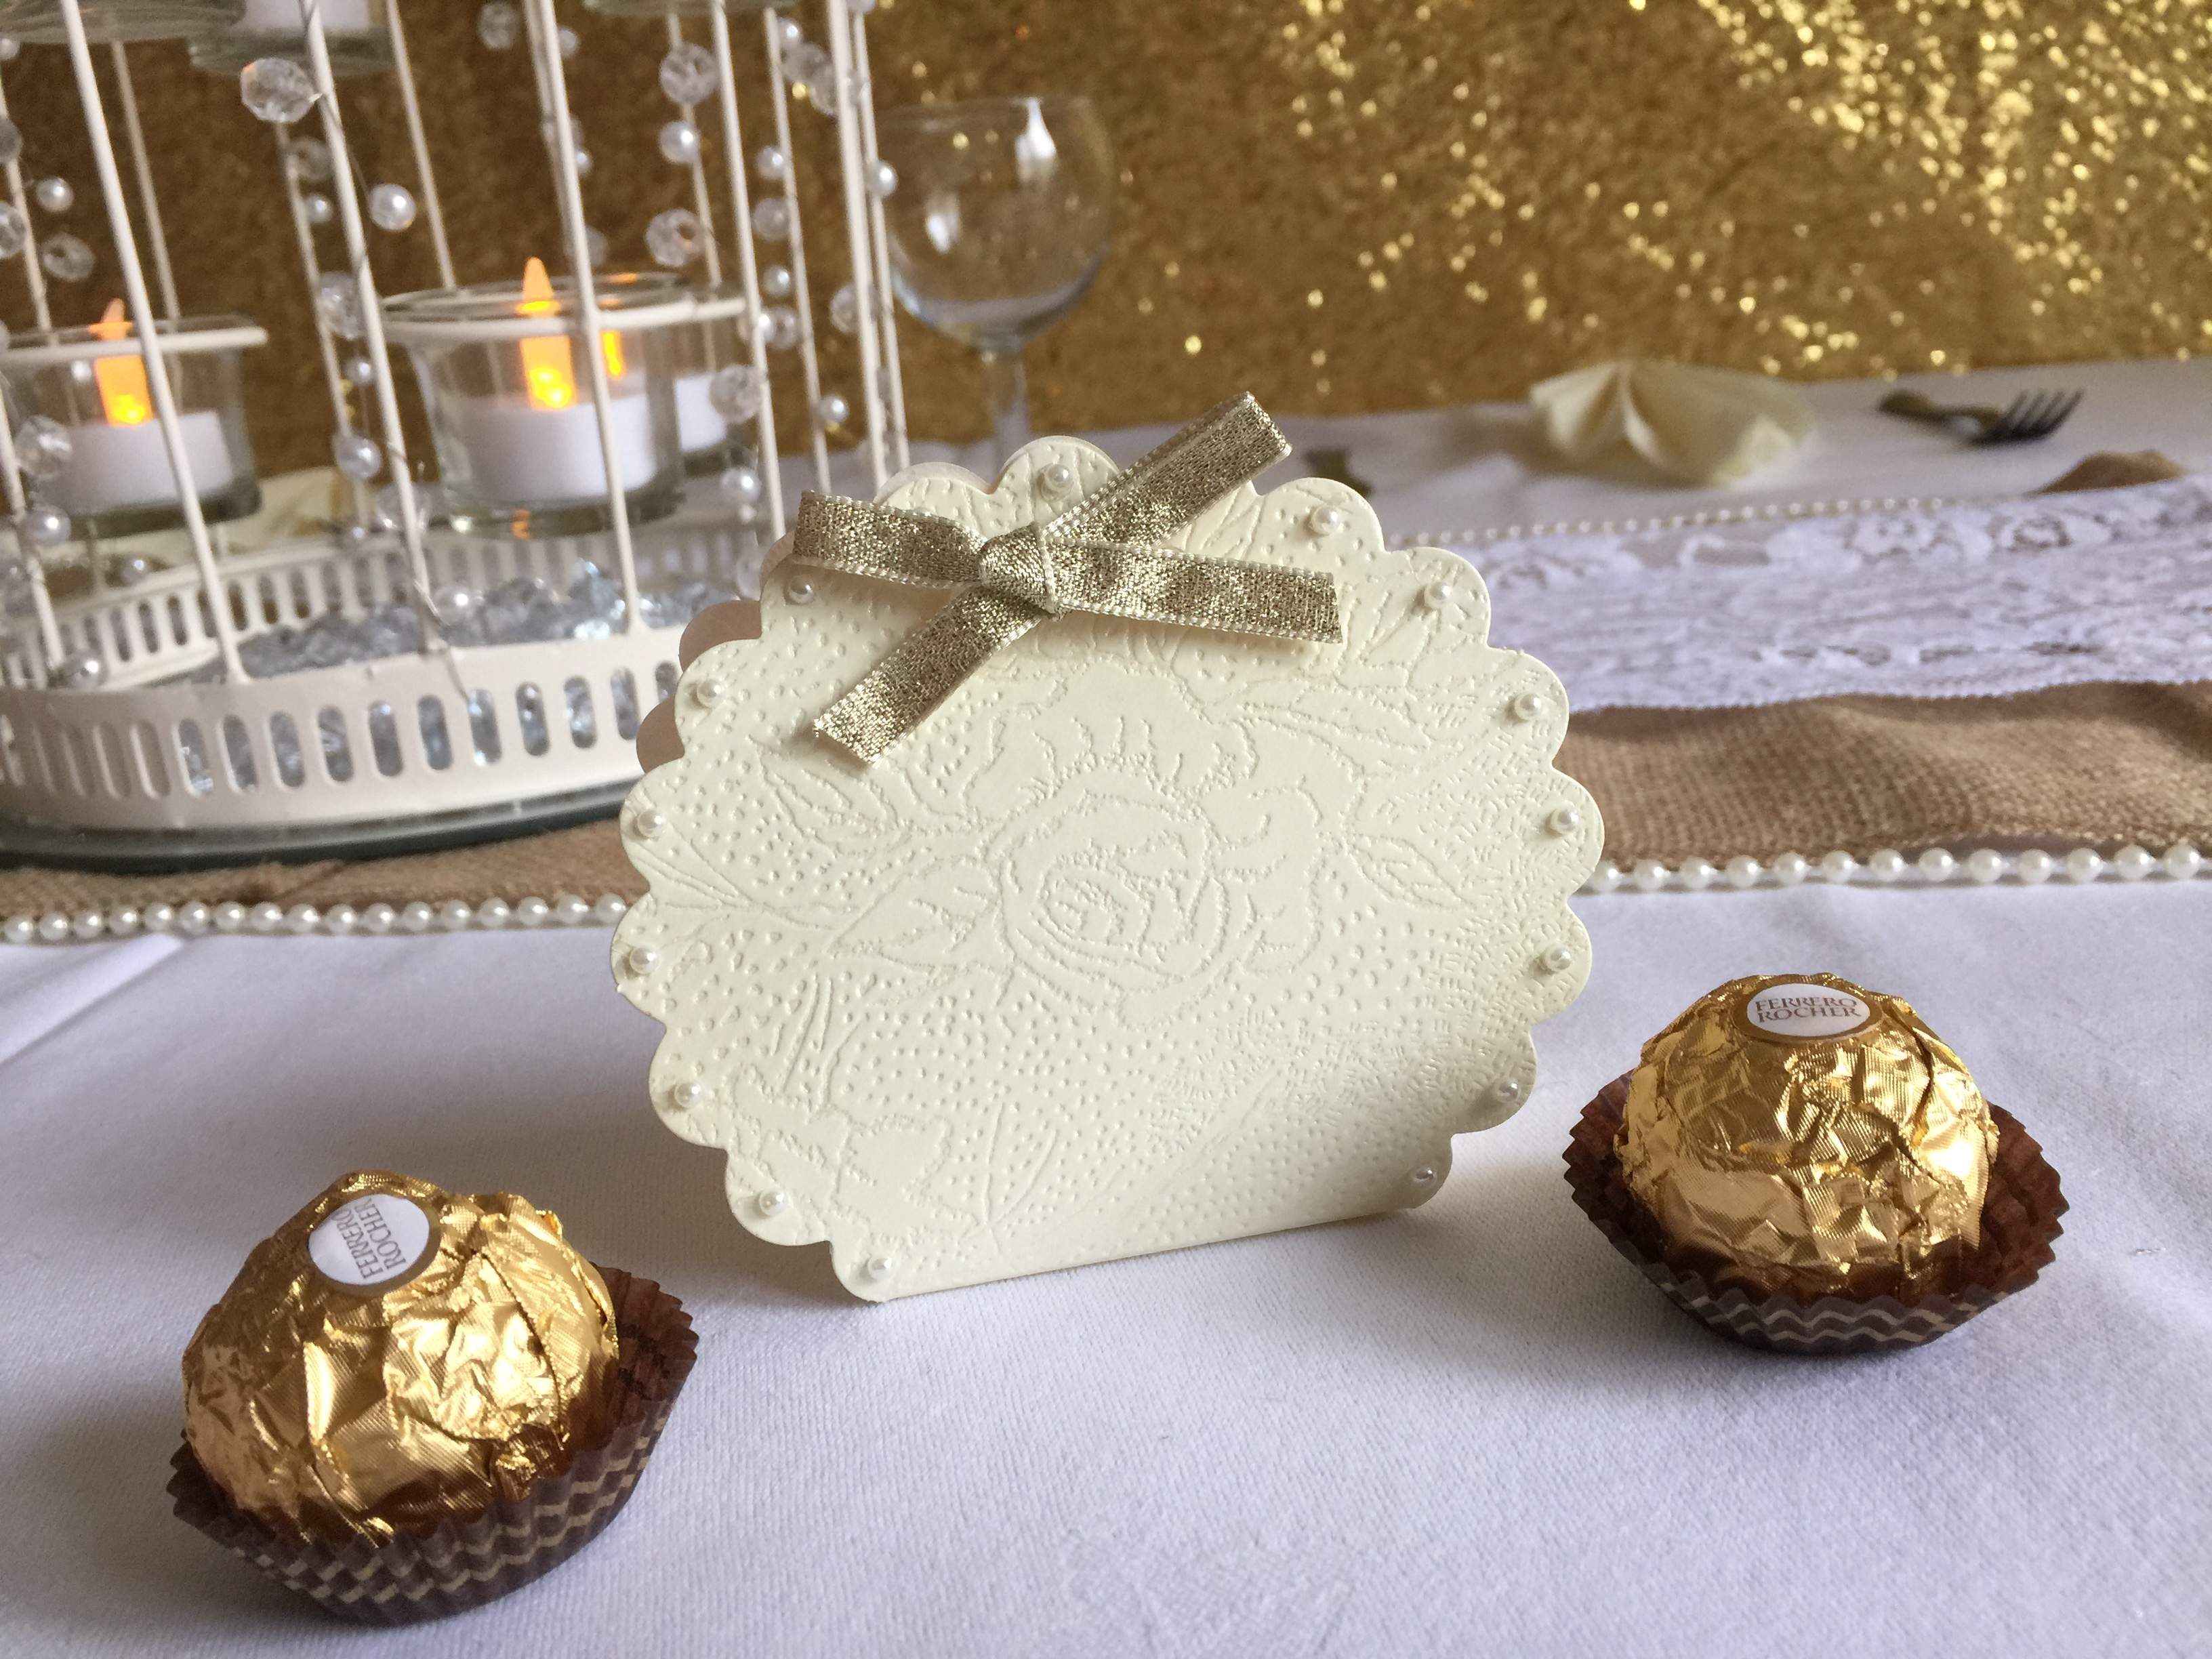 Pearl Shell Chocolate Filled Favour Boxes (Buy 5 get 1 FREE)